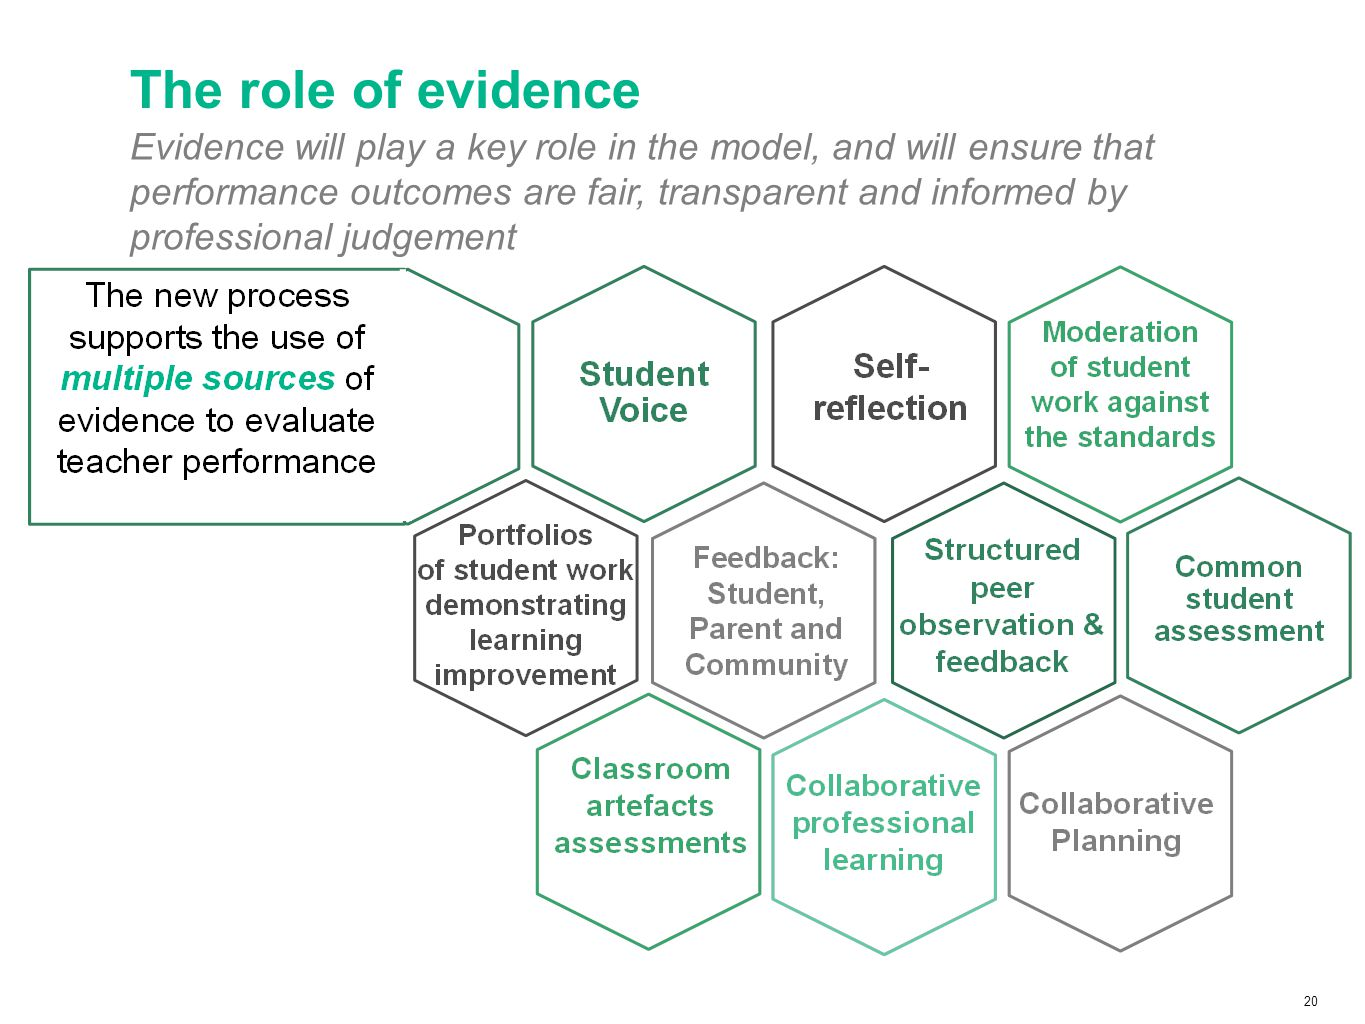 20 Evidence will play a key role in the model, and will ensure that performance outcomes are fair, transparent and informed by professional judgement The role of evidence